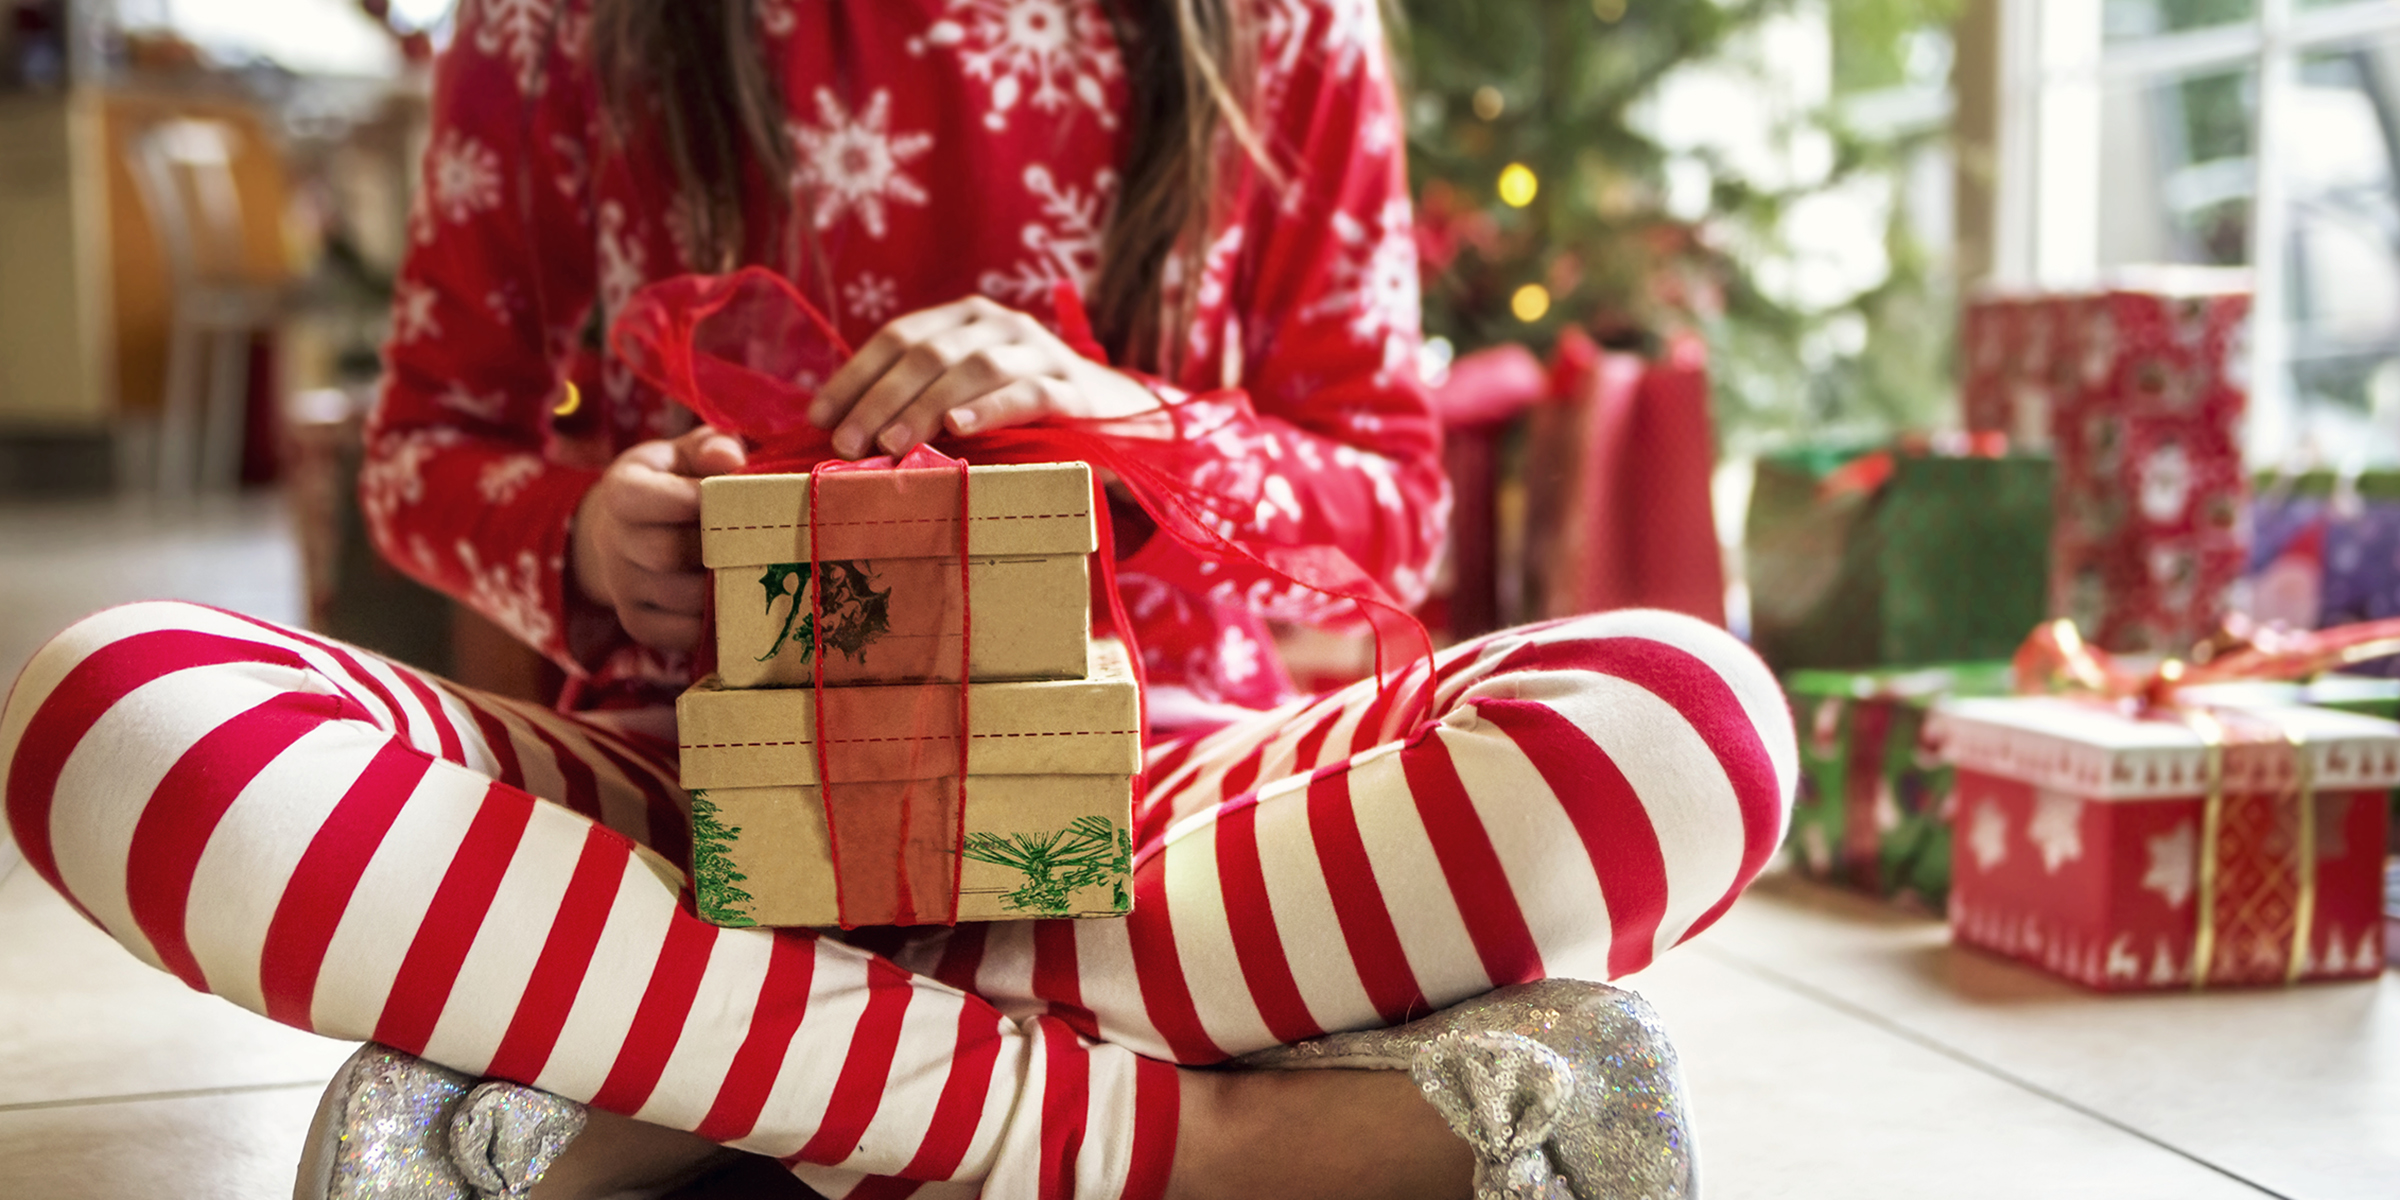 The Best Gifts For Kids By Age According To Our 2019 Gift